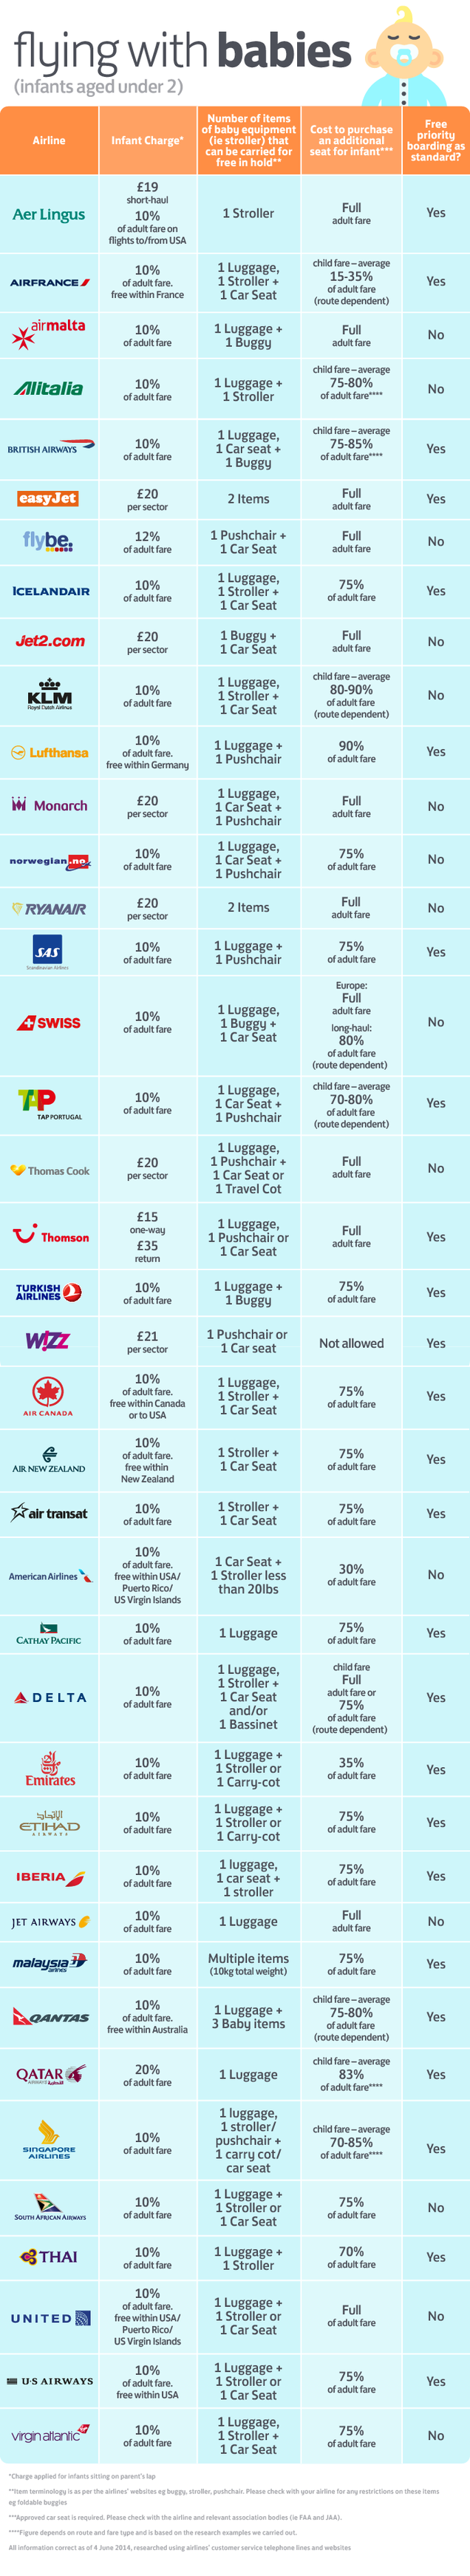 This Infographic Tells You Each Airline's Rules for Flying with Babies